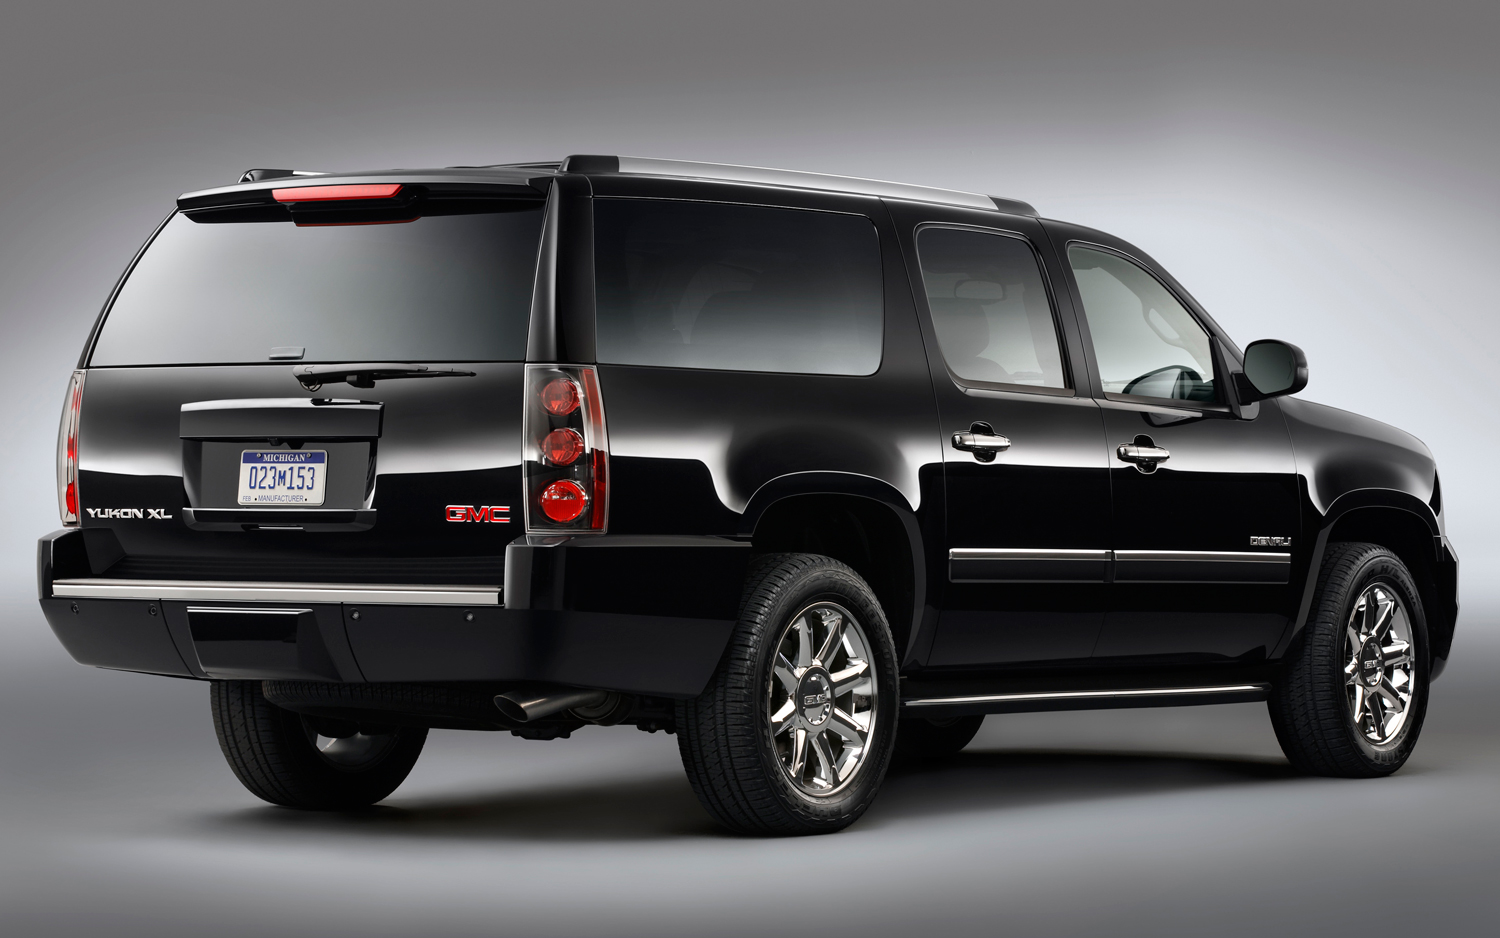 2013 gmc yukon xl information and photos zombiedrive. Black Bedroom Furniture Sets. Home Design Ideas